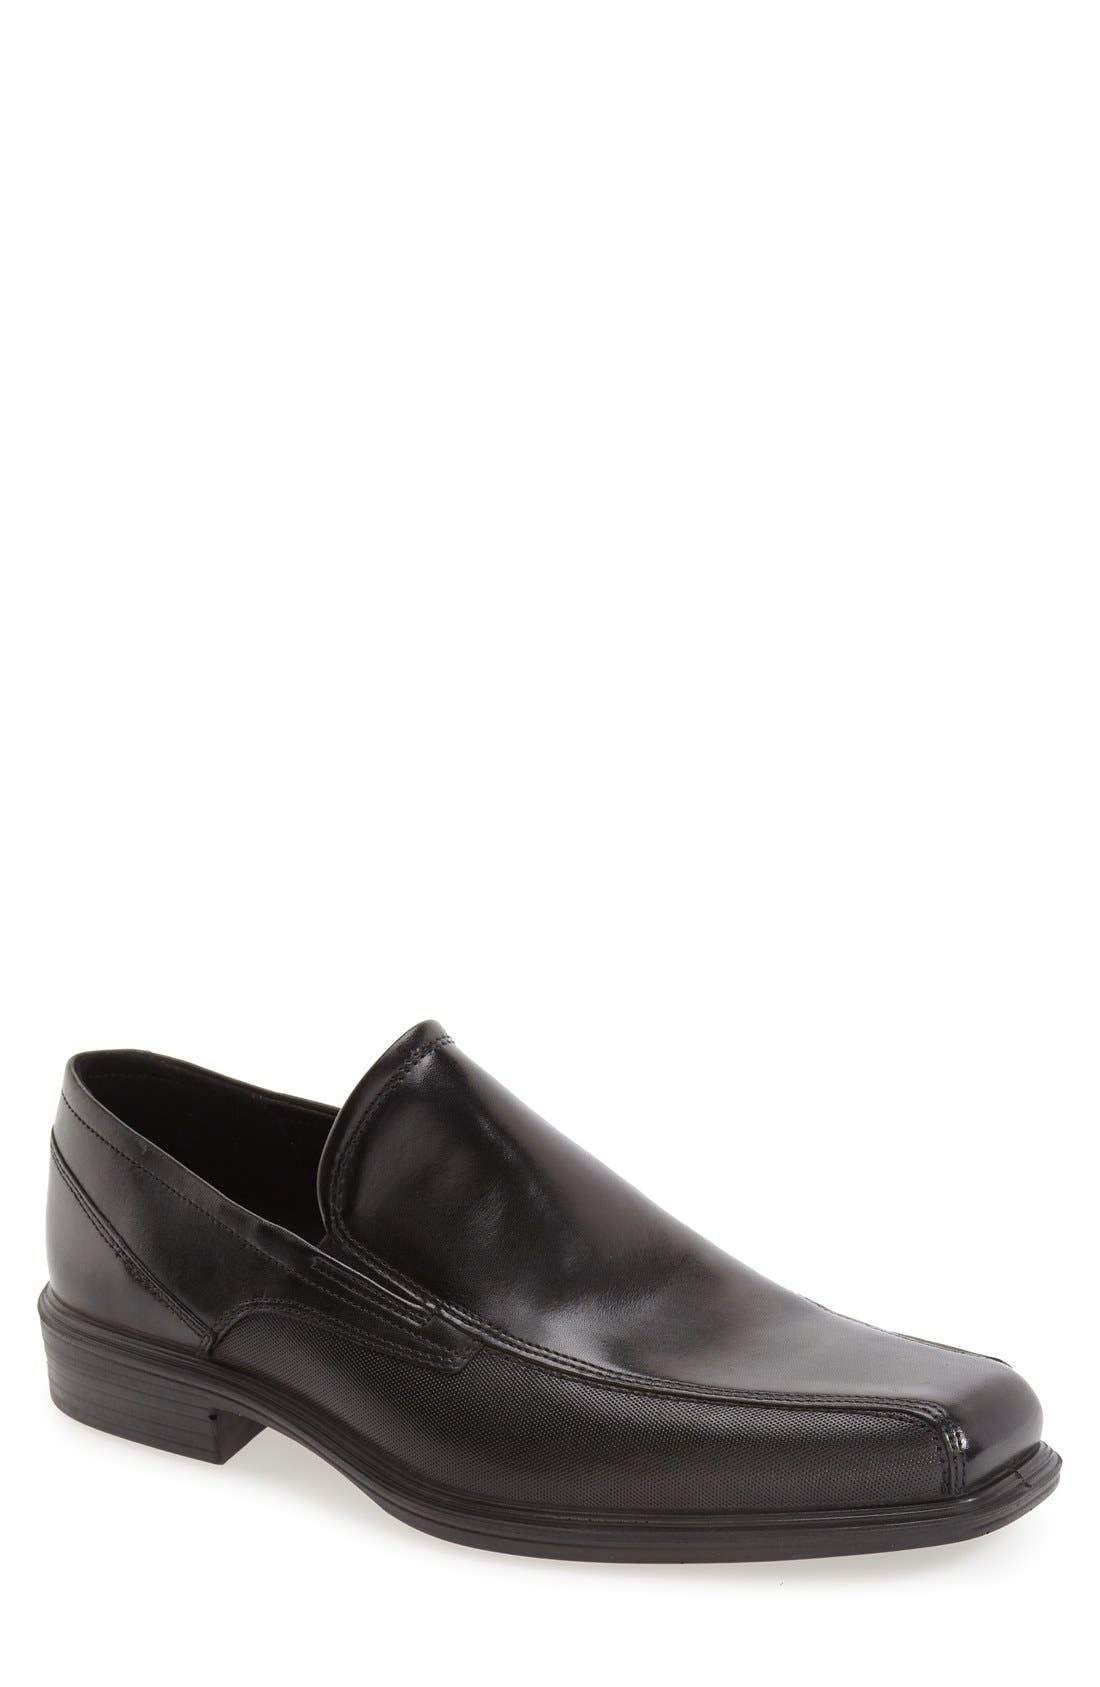 'Johannesburg' Venetian Loafer,                         Main,                         color, BLACK LEATHER